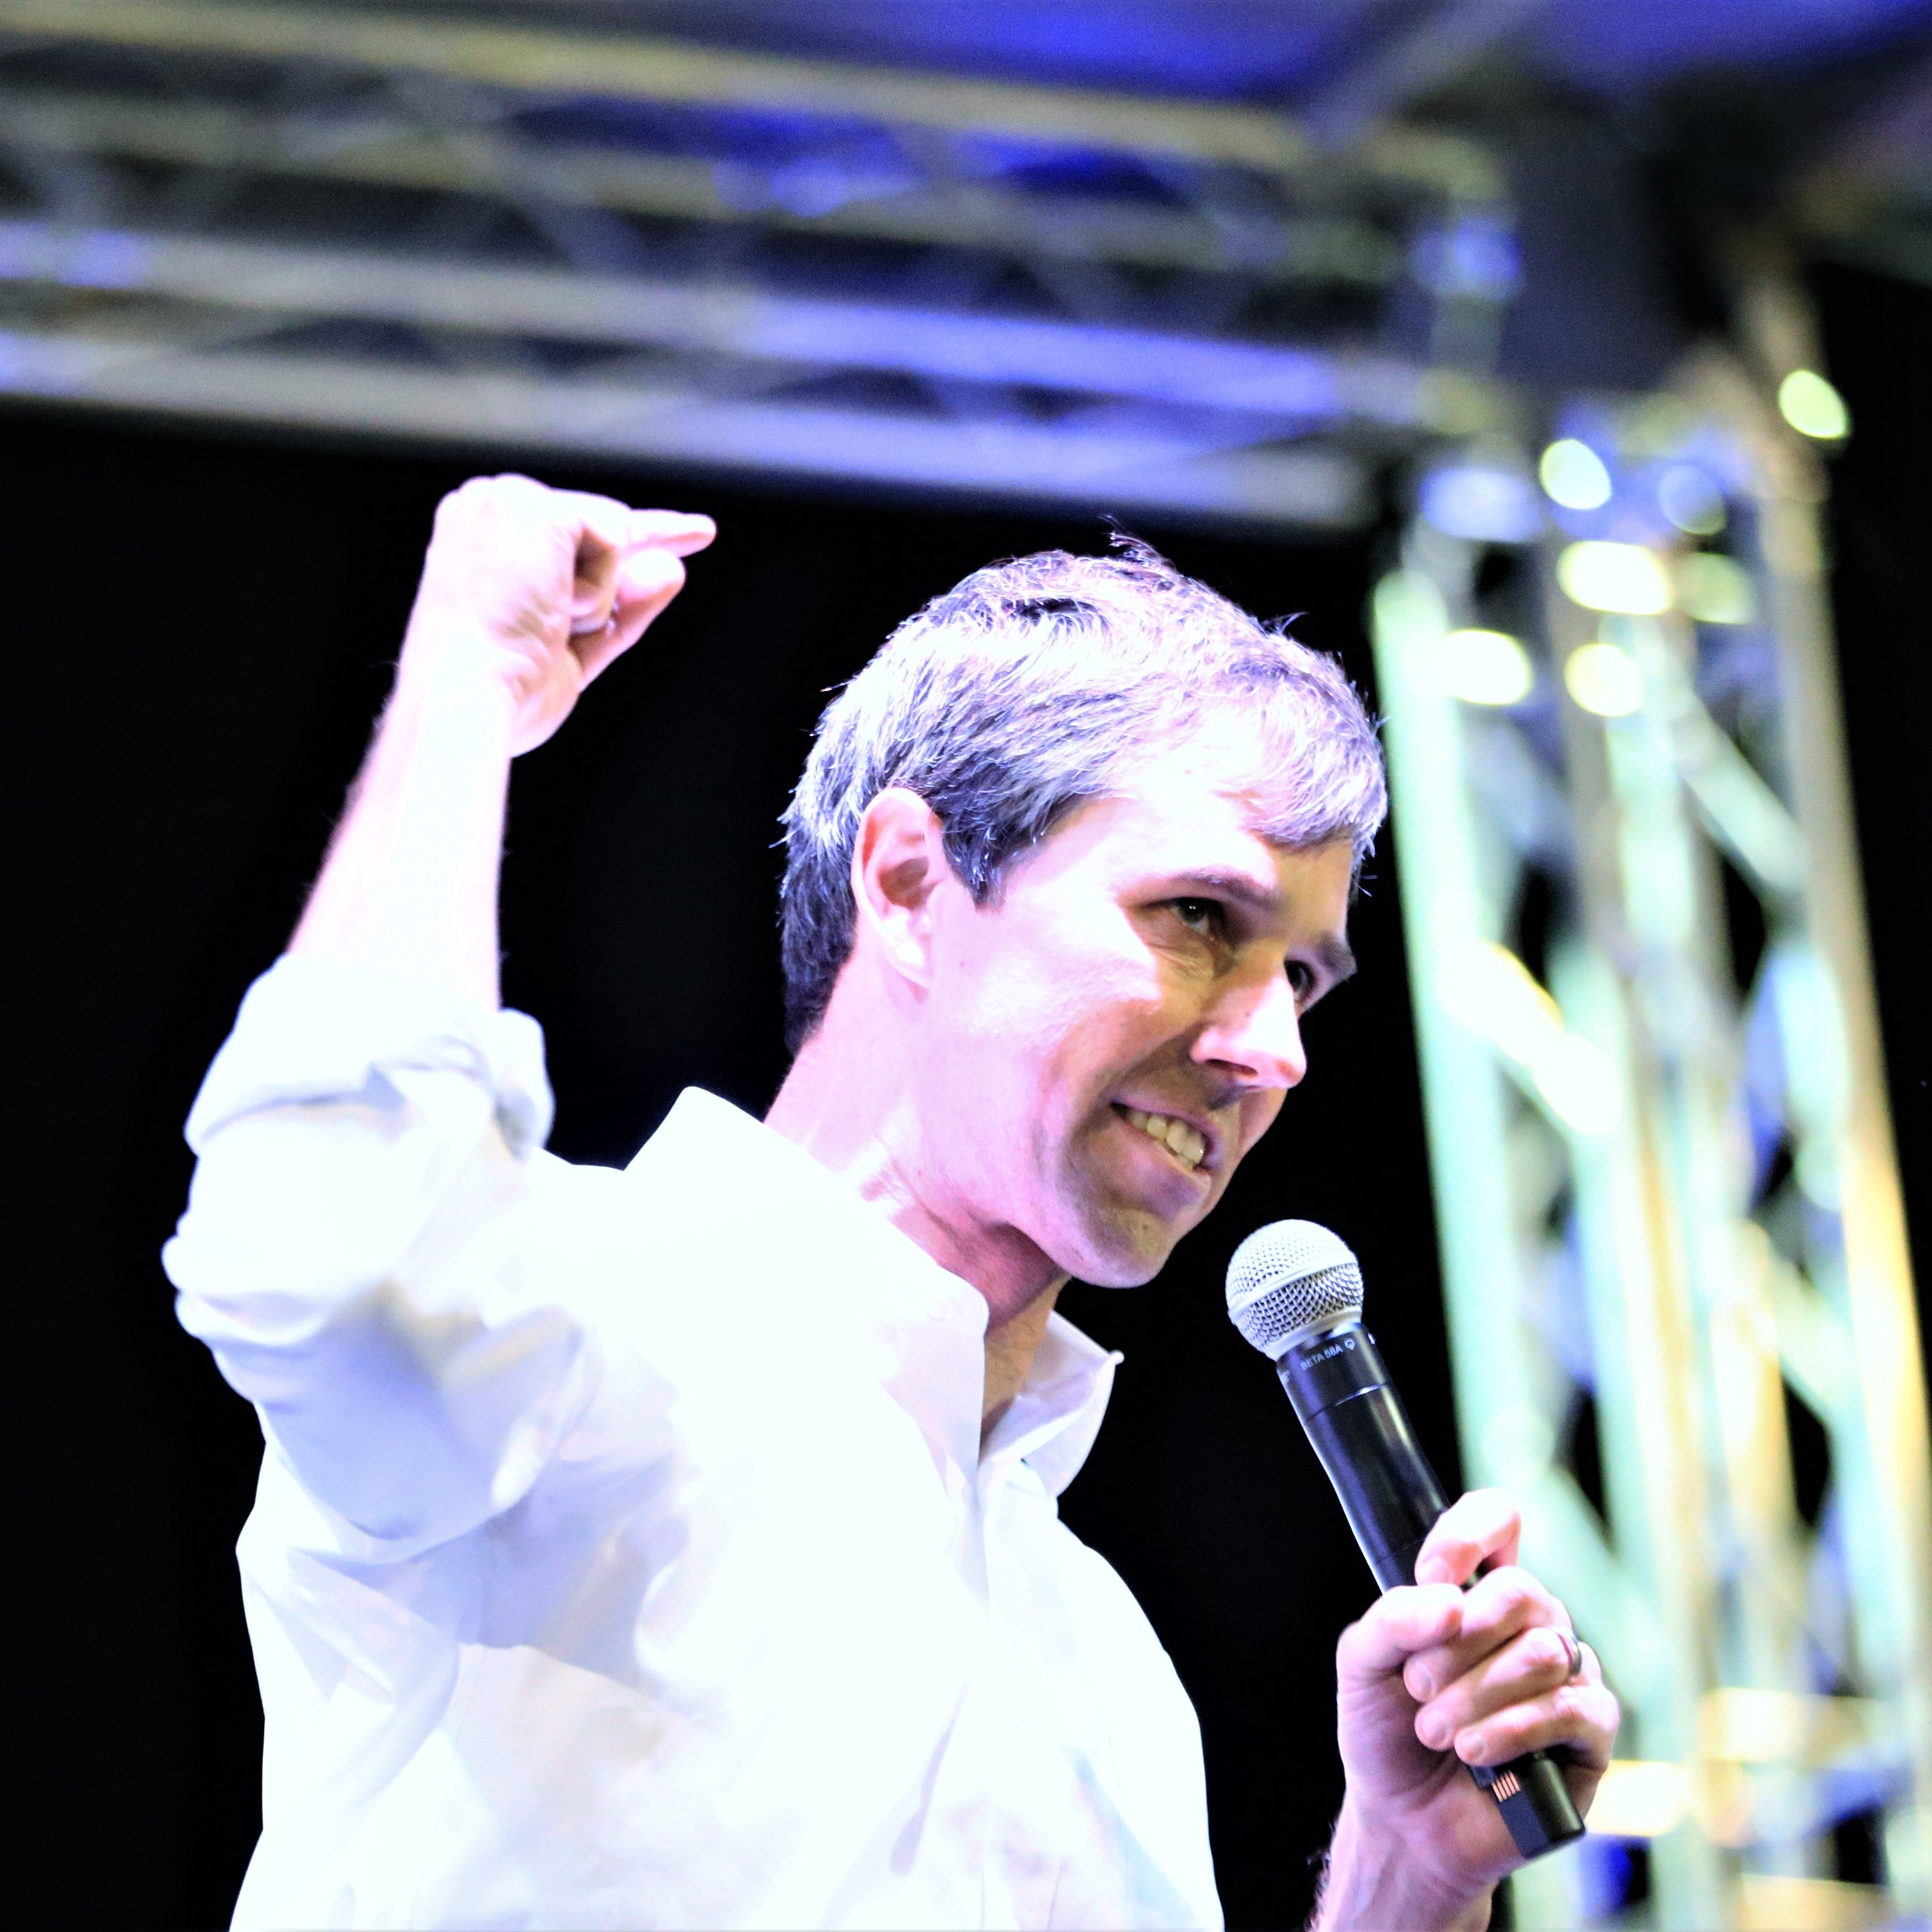 Beto O'Rourke kickoff rally in El Paso: Here's what we know